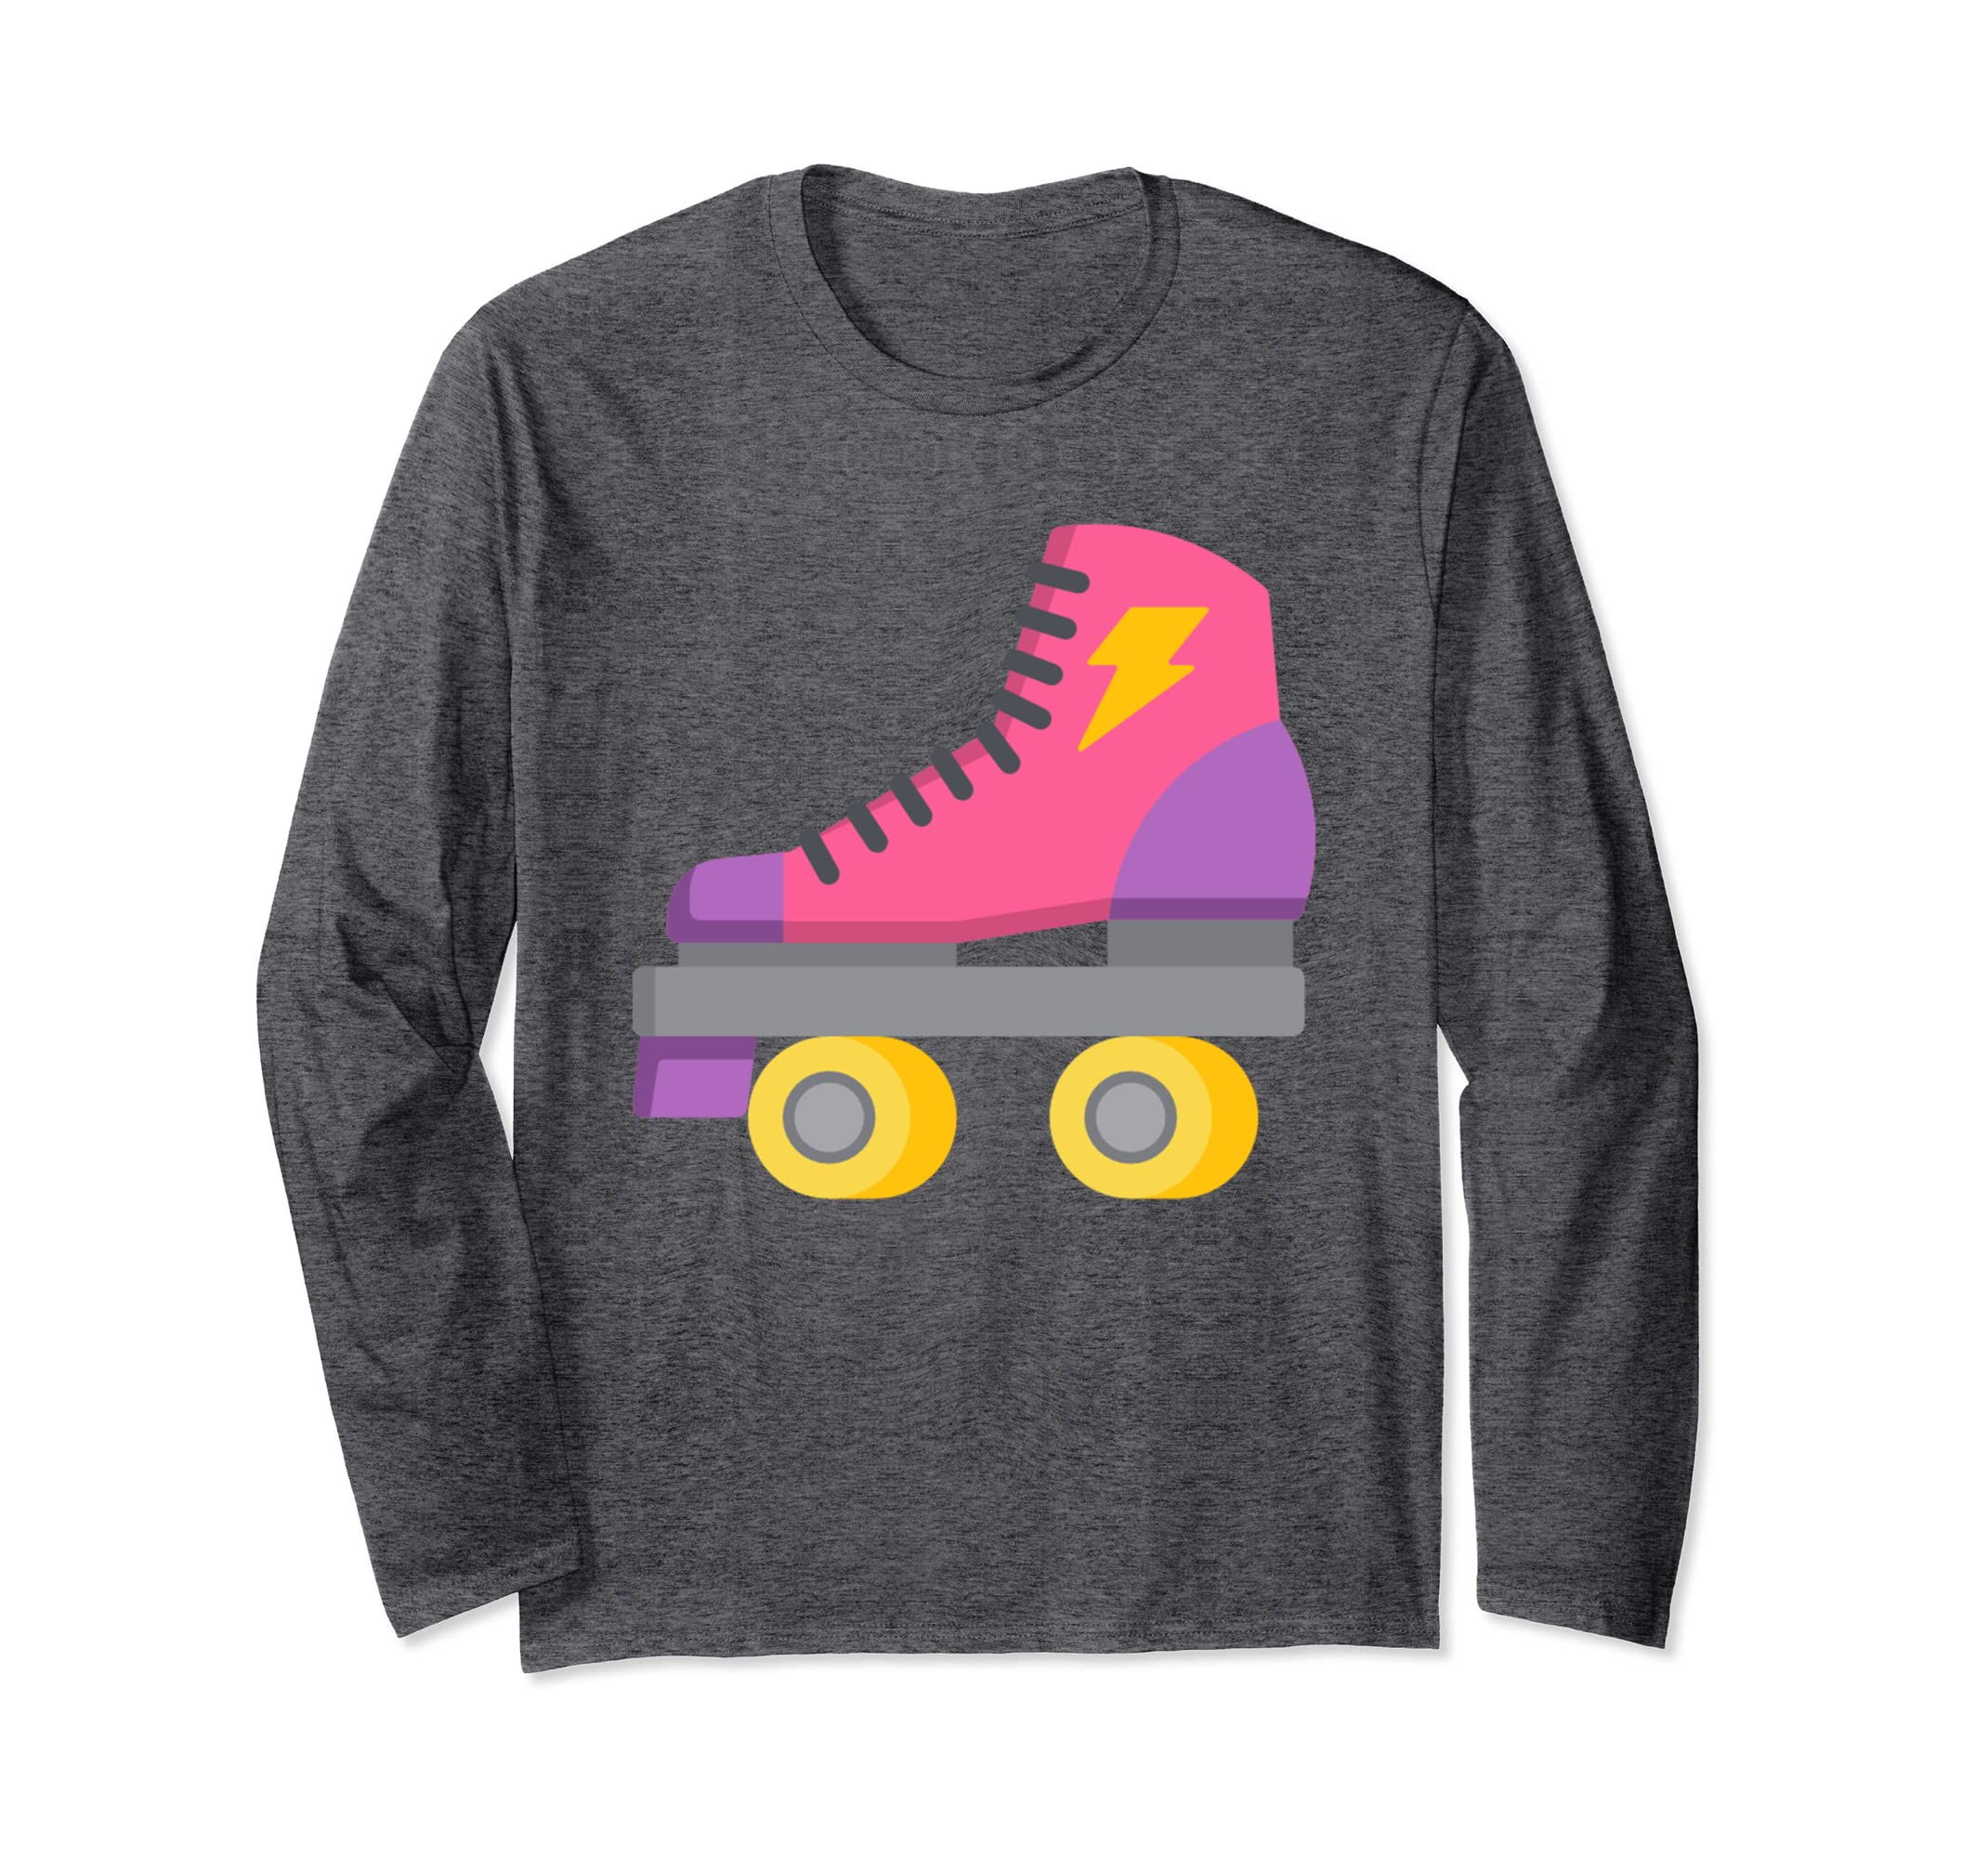 06be6af83ae Amazon.com  80s Sweatshirt Womens 80s Retro Roller Skate Print Tee Top   Clothing